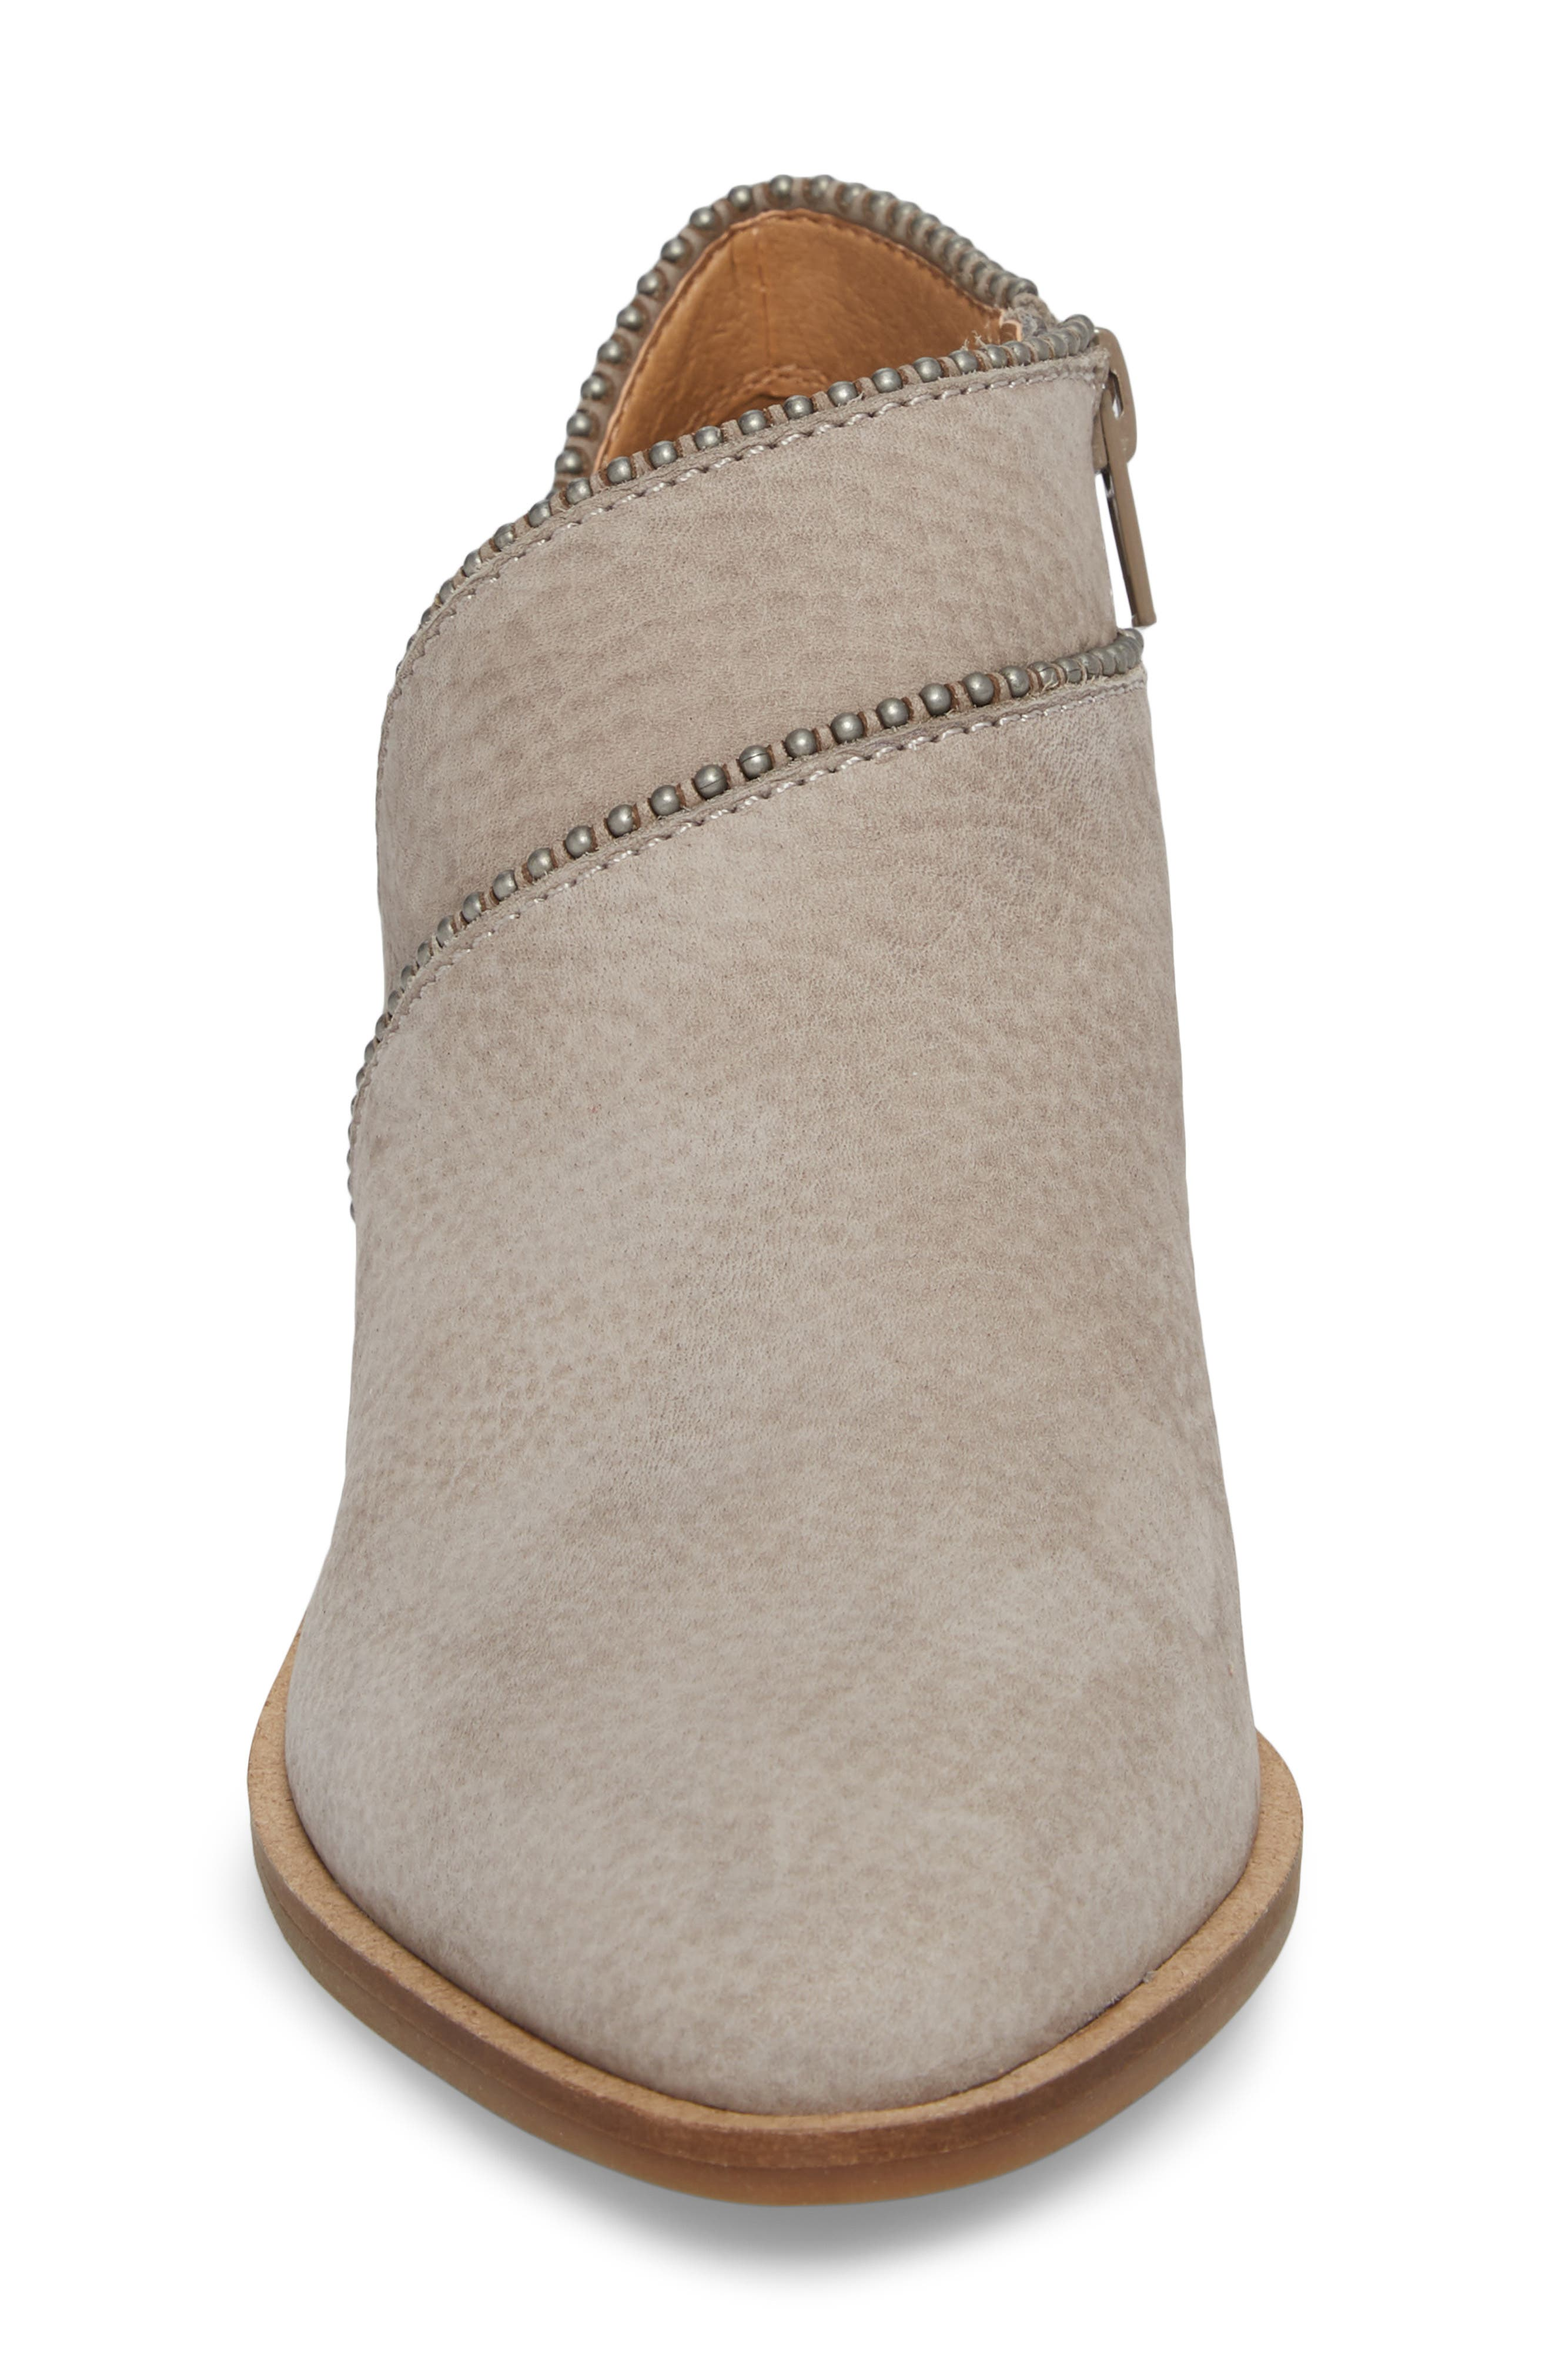 LUCKY BRAND,                             Perrma Bootie,                             Alternate thumbnail 4, color,                             060